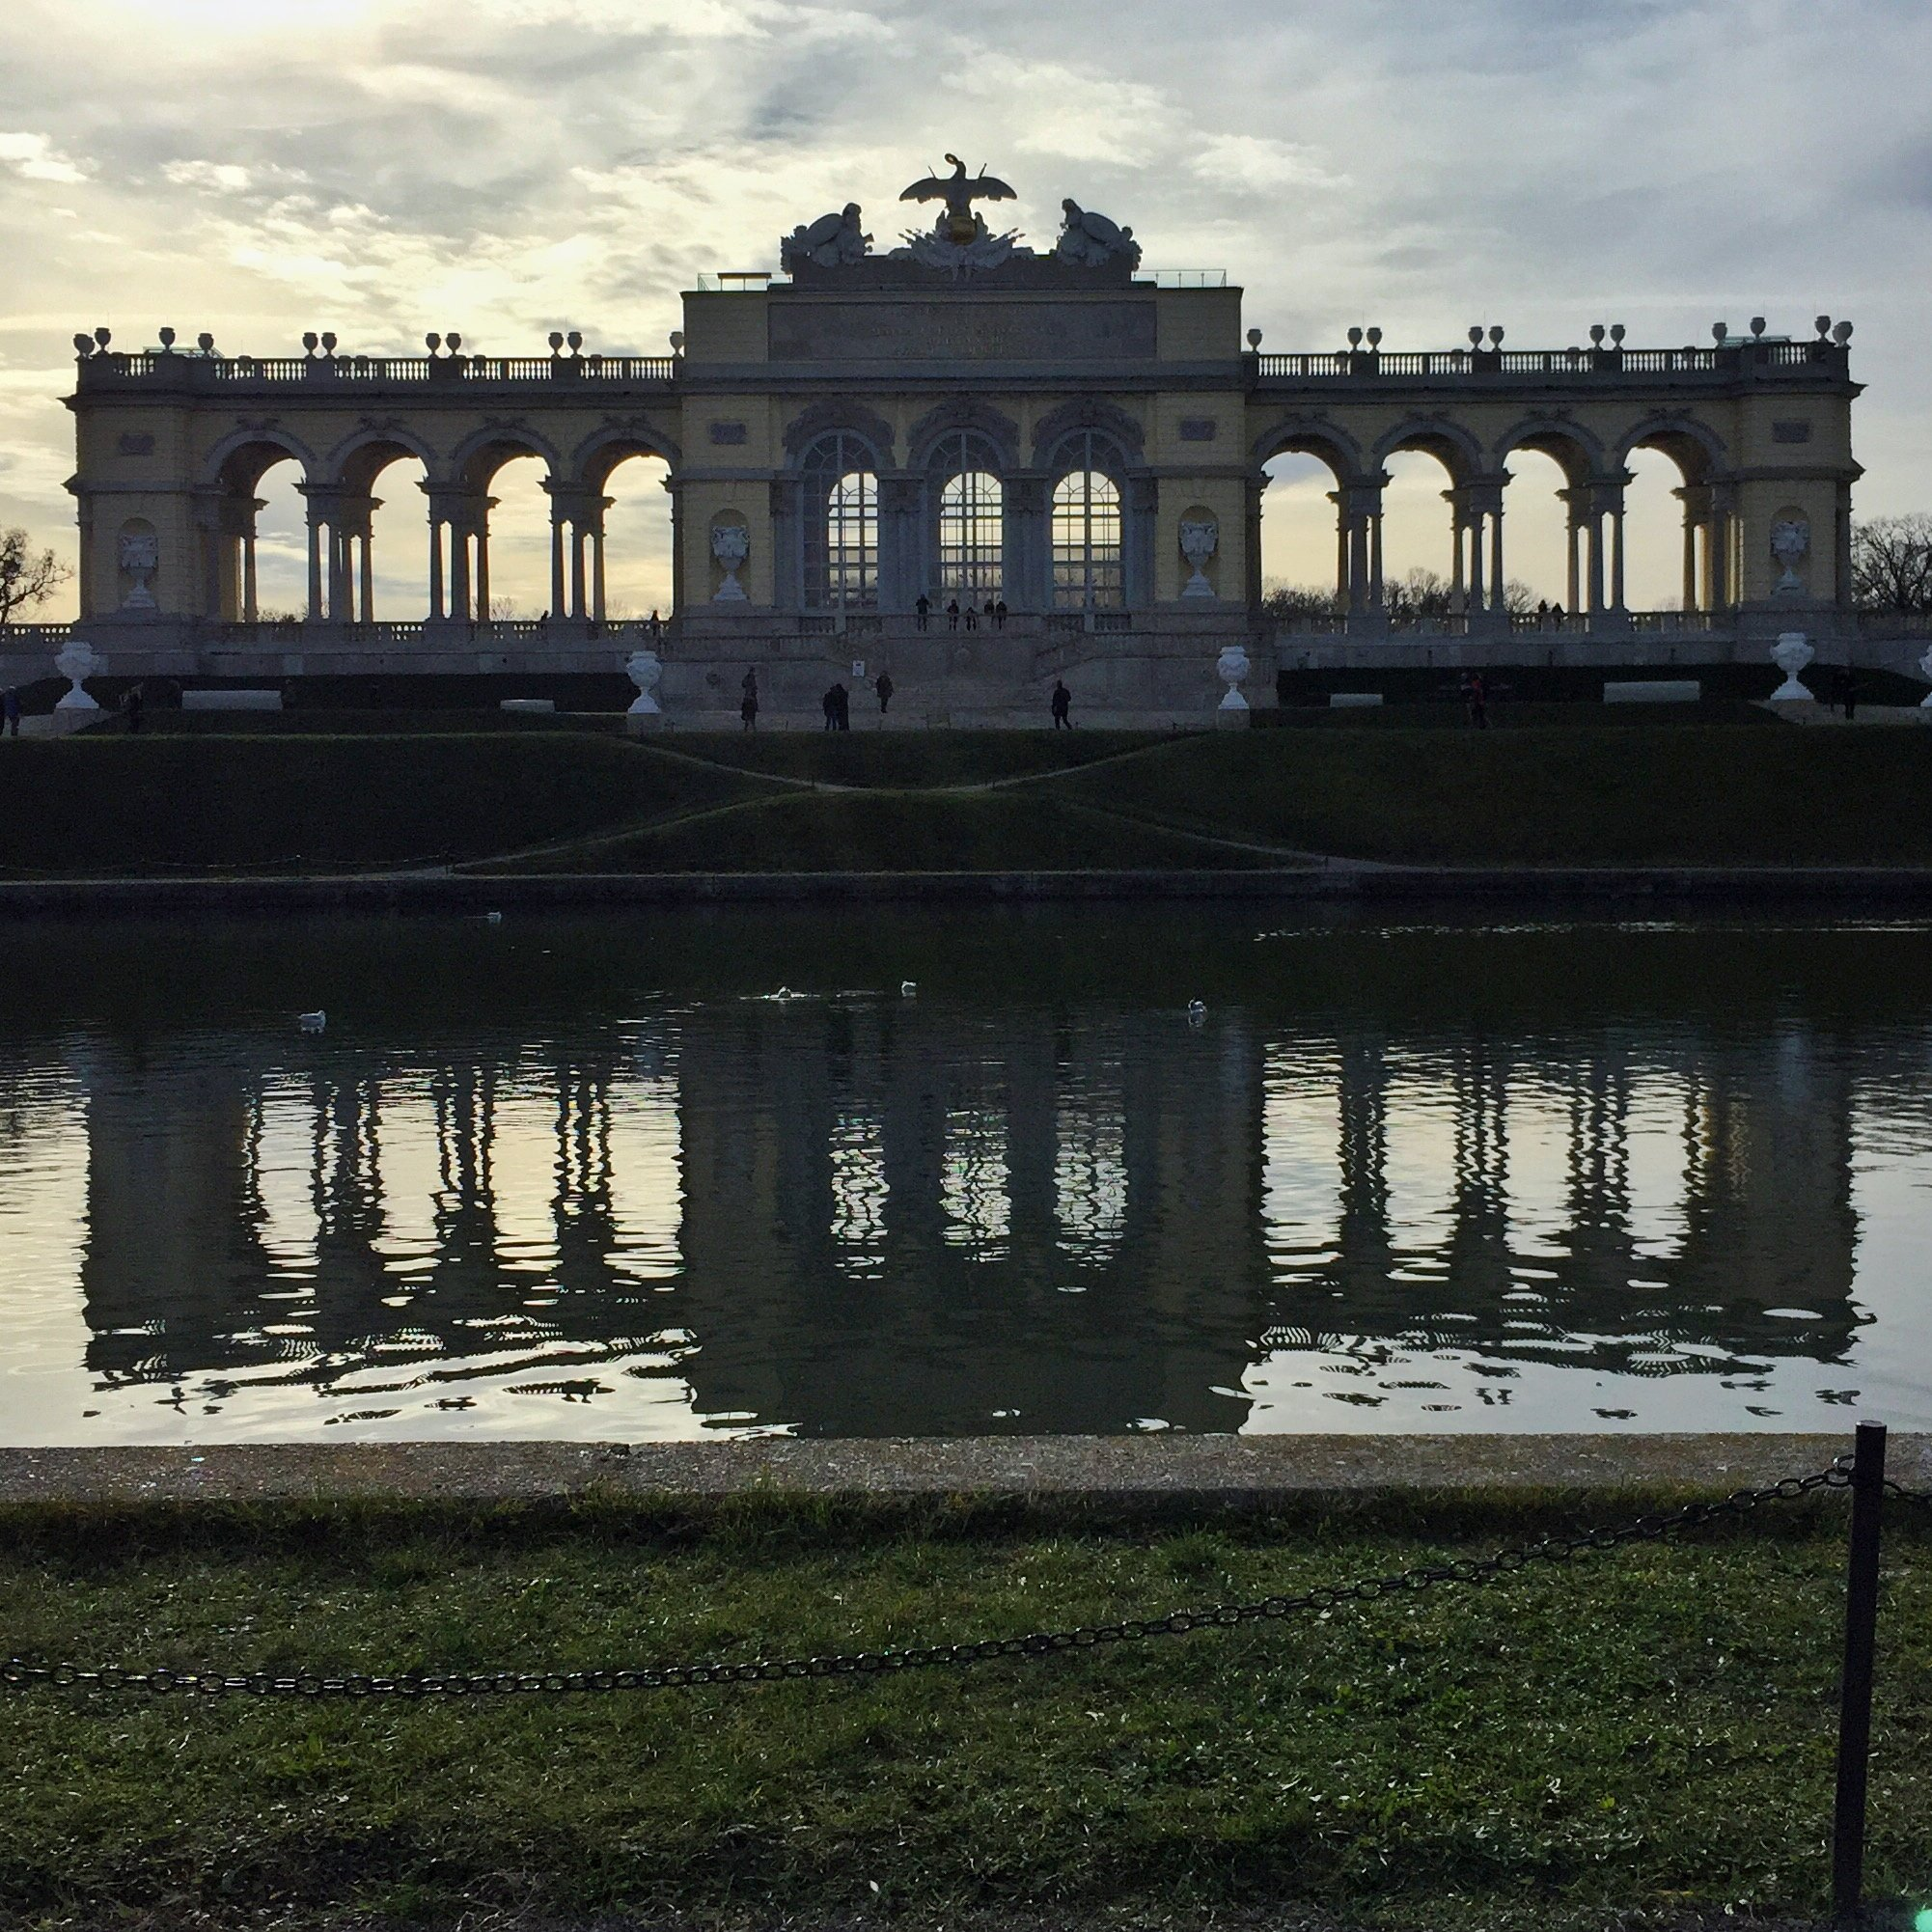 The Gloriette at Schonbrunn Palace, Vienna